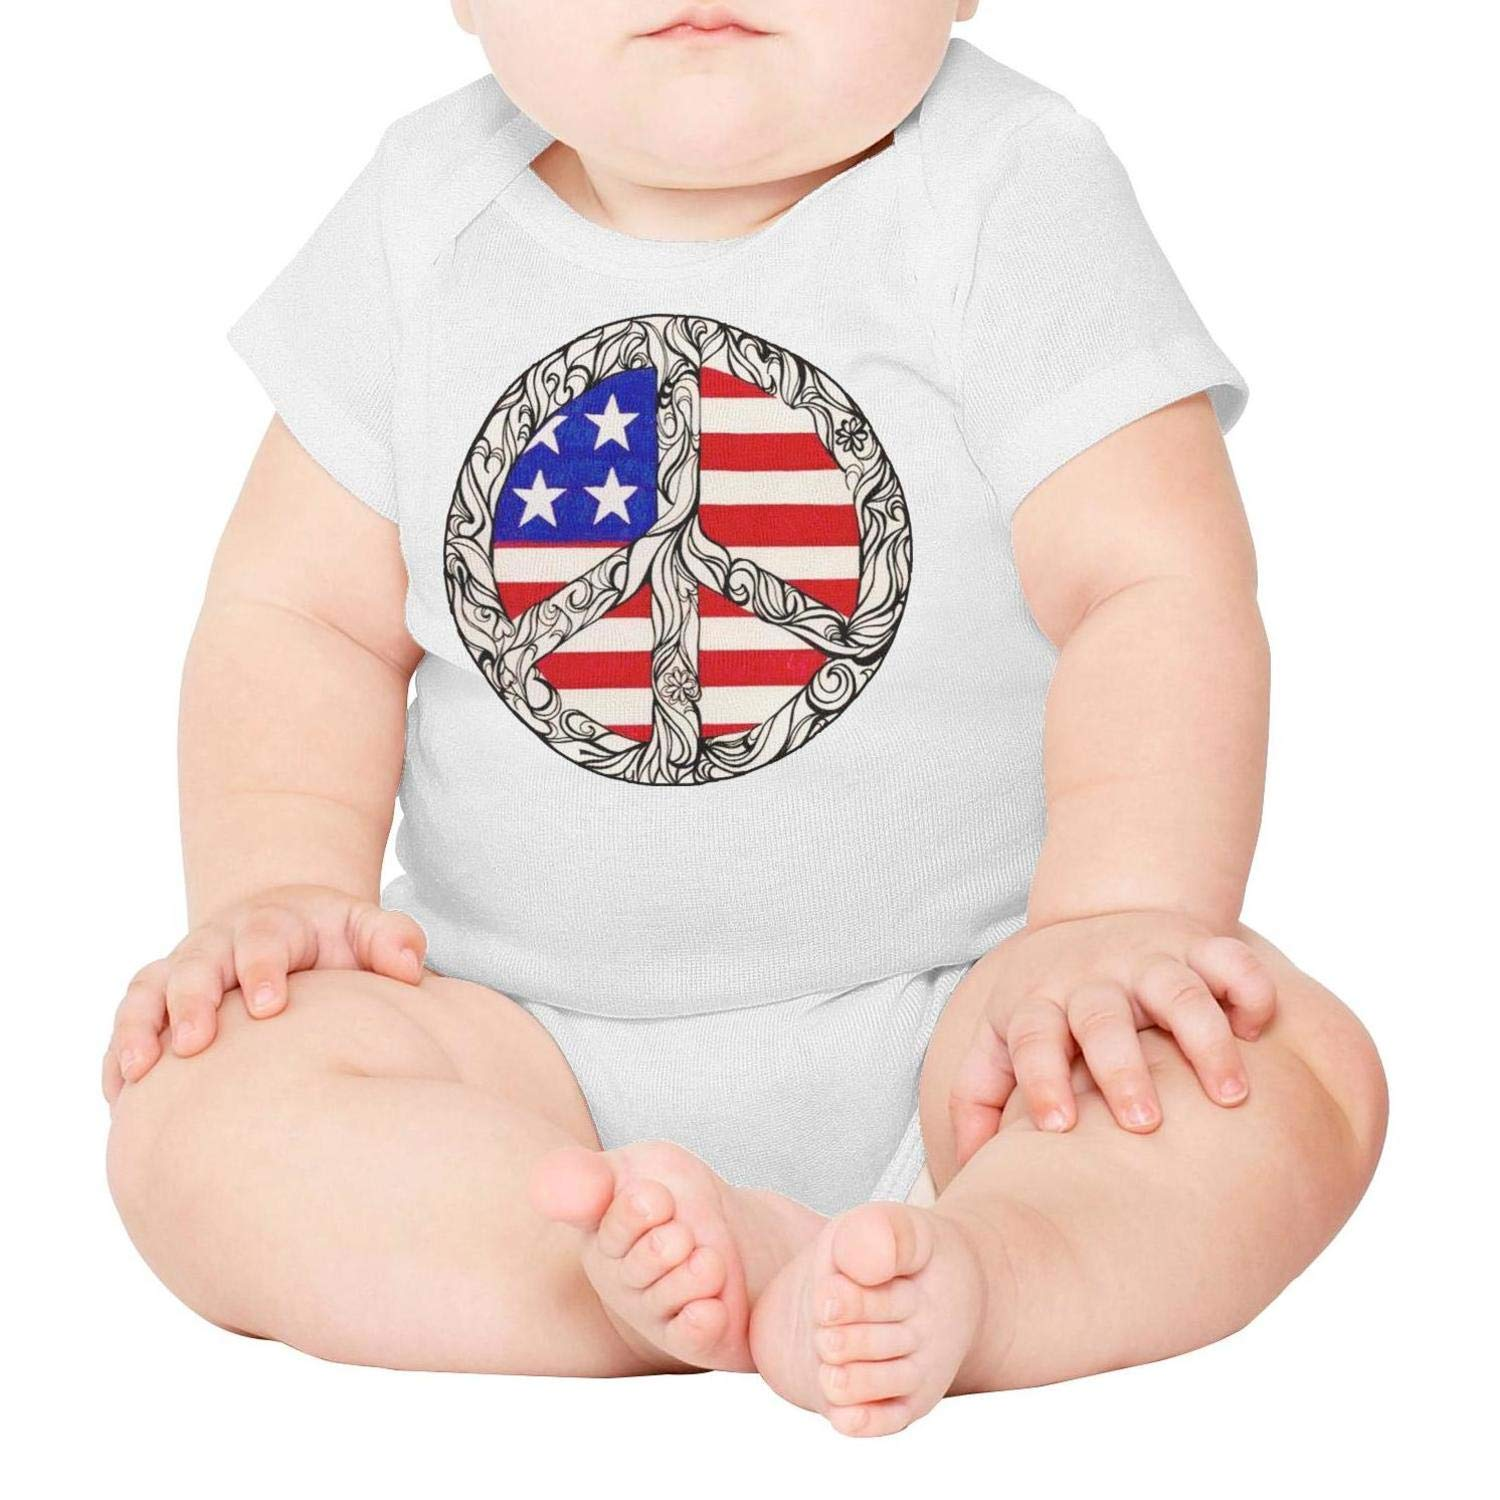 Baby Onesies Peace Corps 100/% Cotton Newborn Baby Clothes Cute Short Sleeve Bodysuit